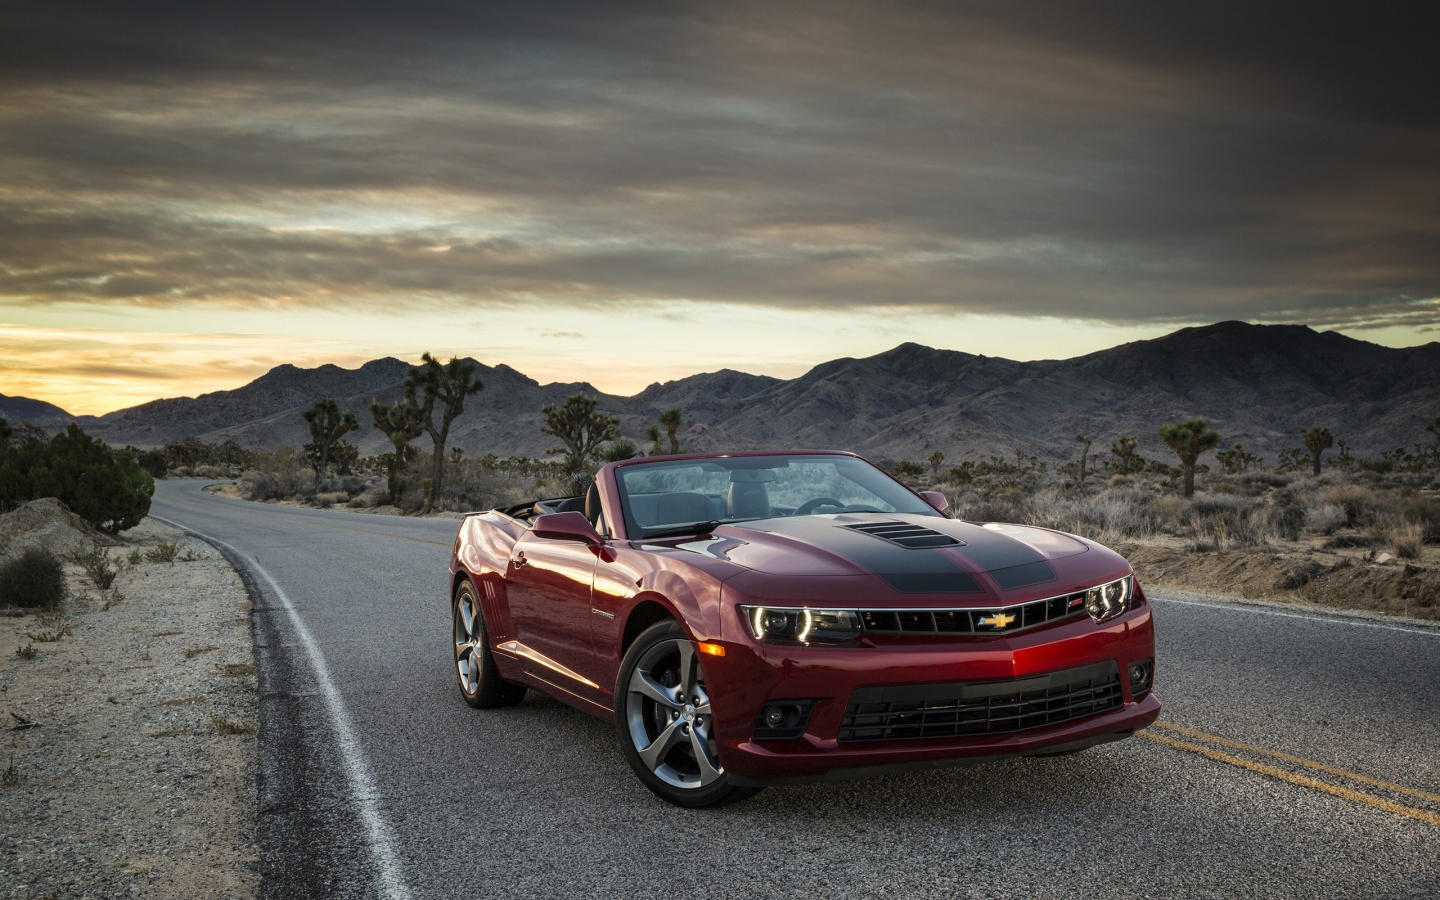 2015 Chevrolet Camaro SS Convertible Wallpaper HD Car Wallpapers 1440x900